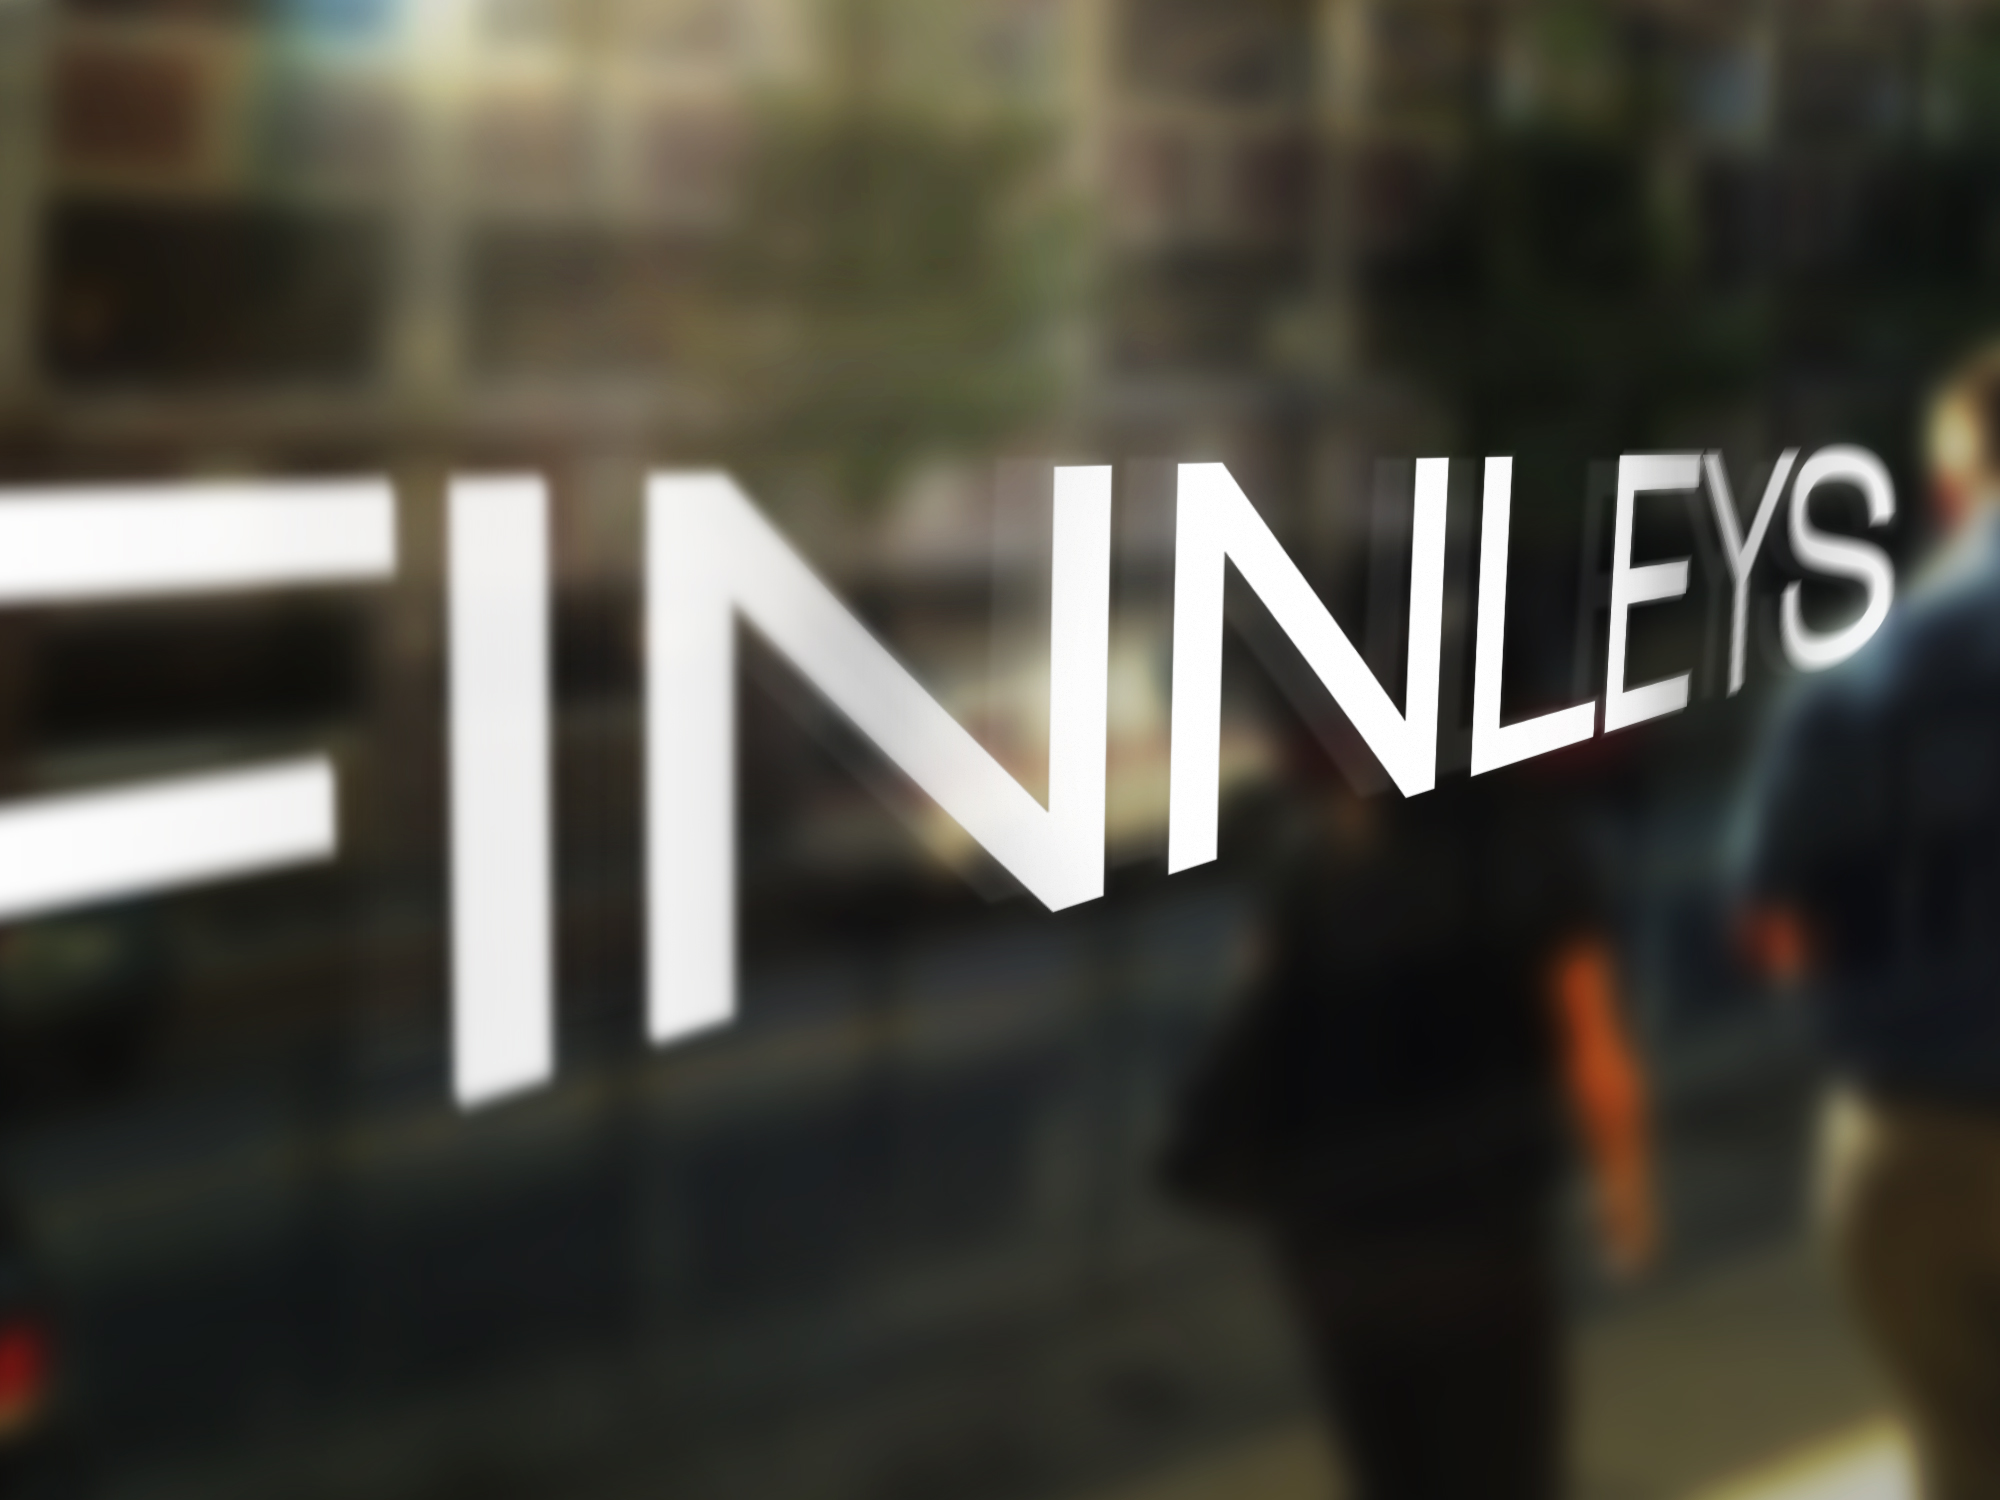 finnleys good findings window signage